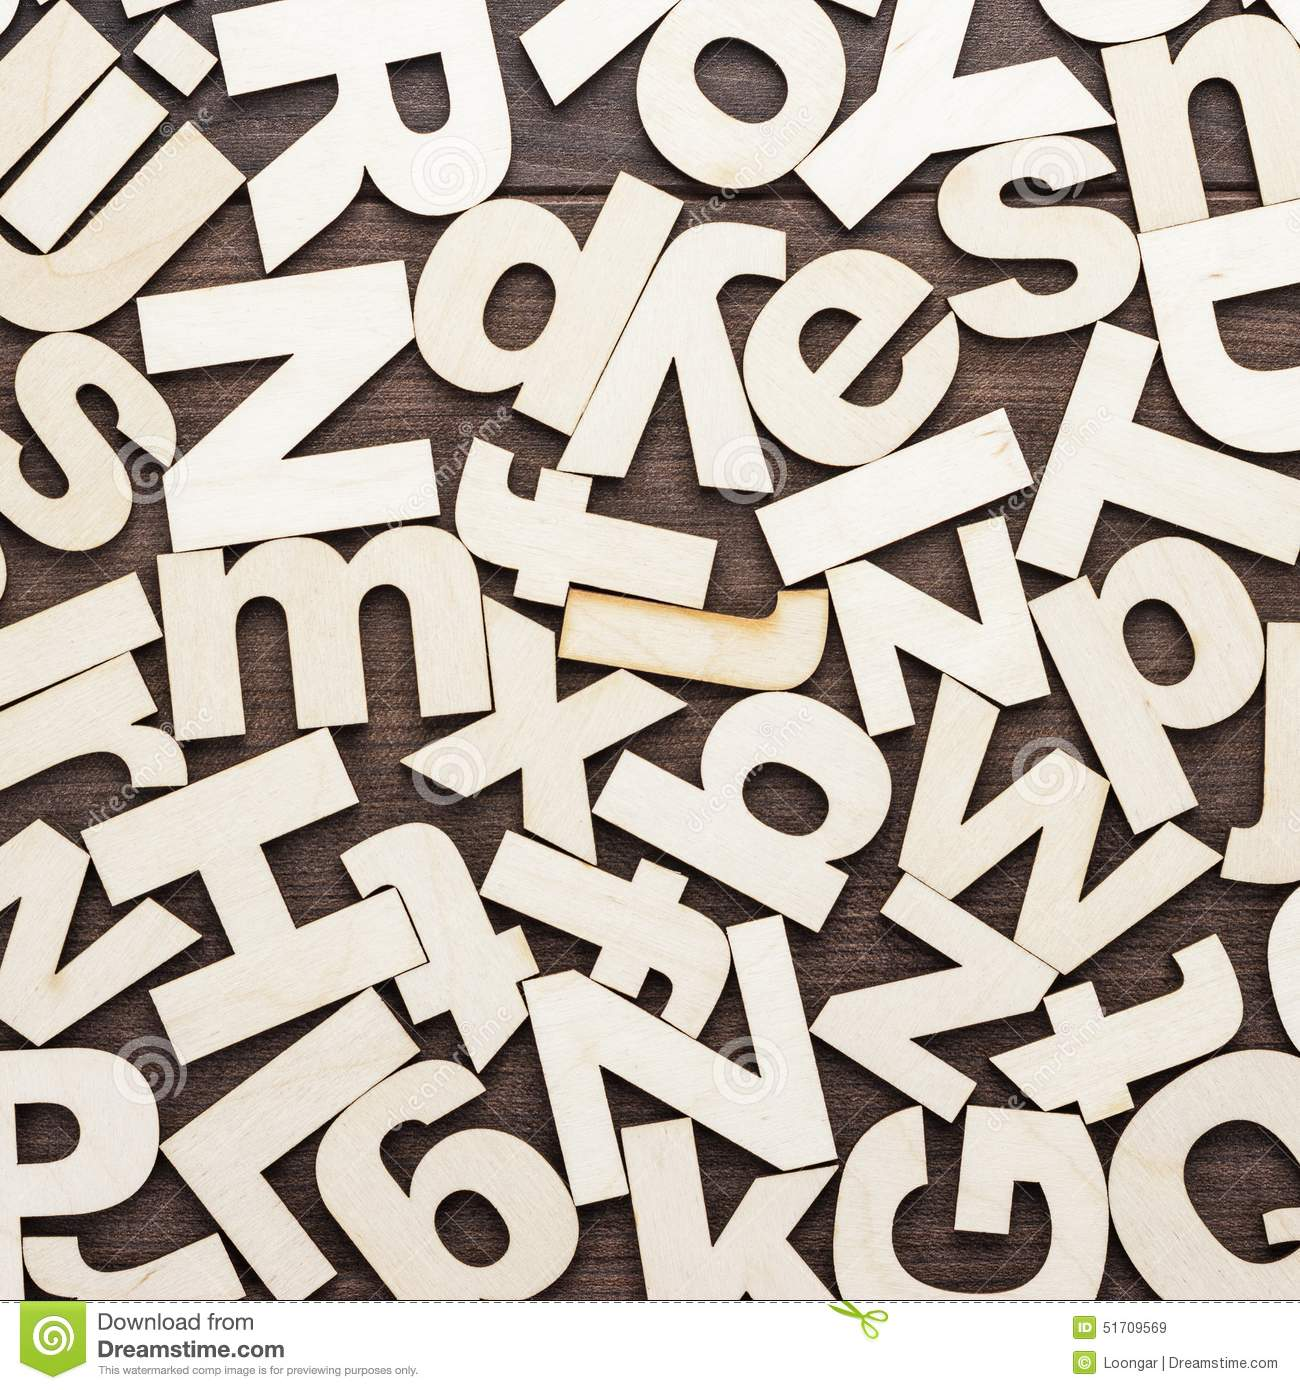 uppercase and lowercase wooden letters background